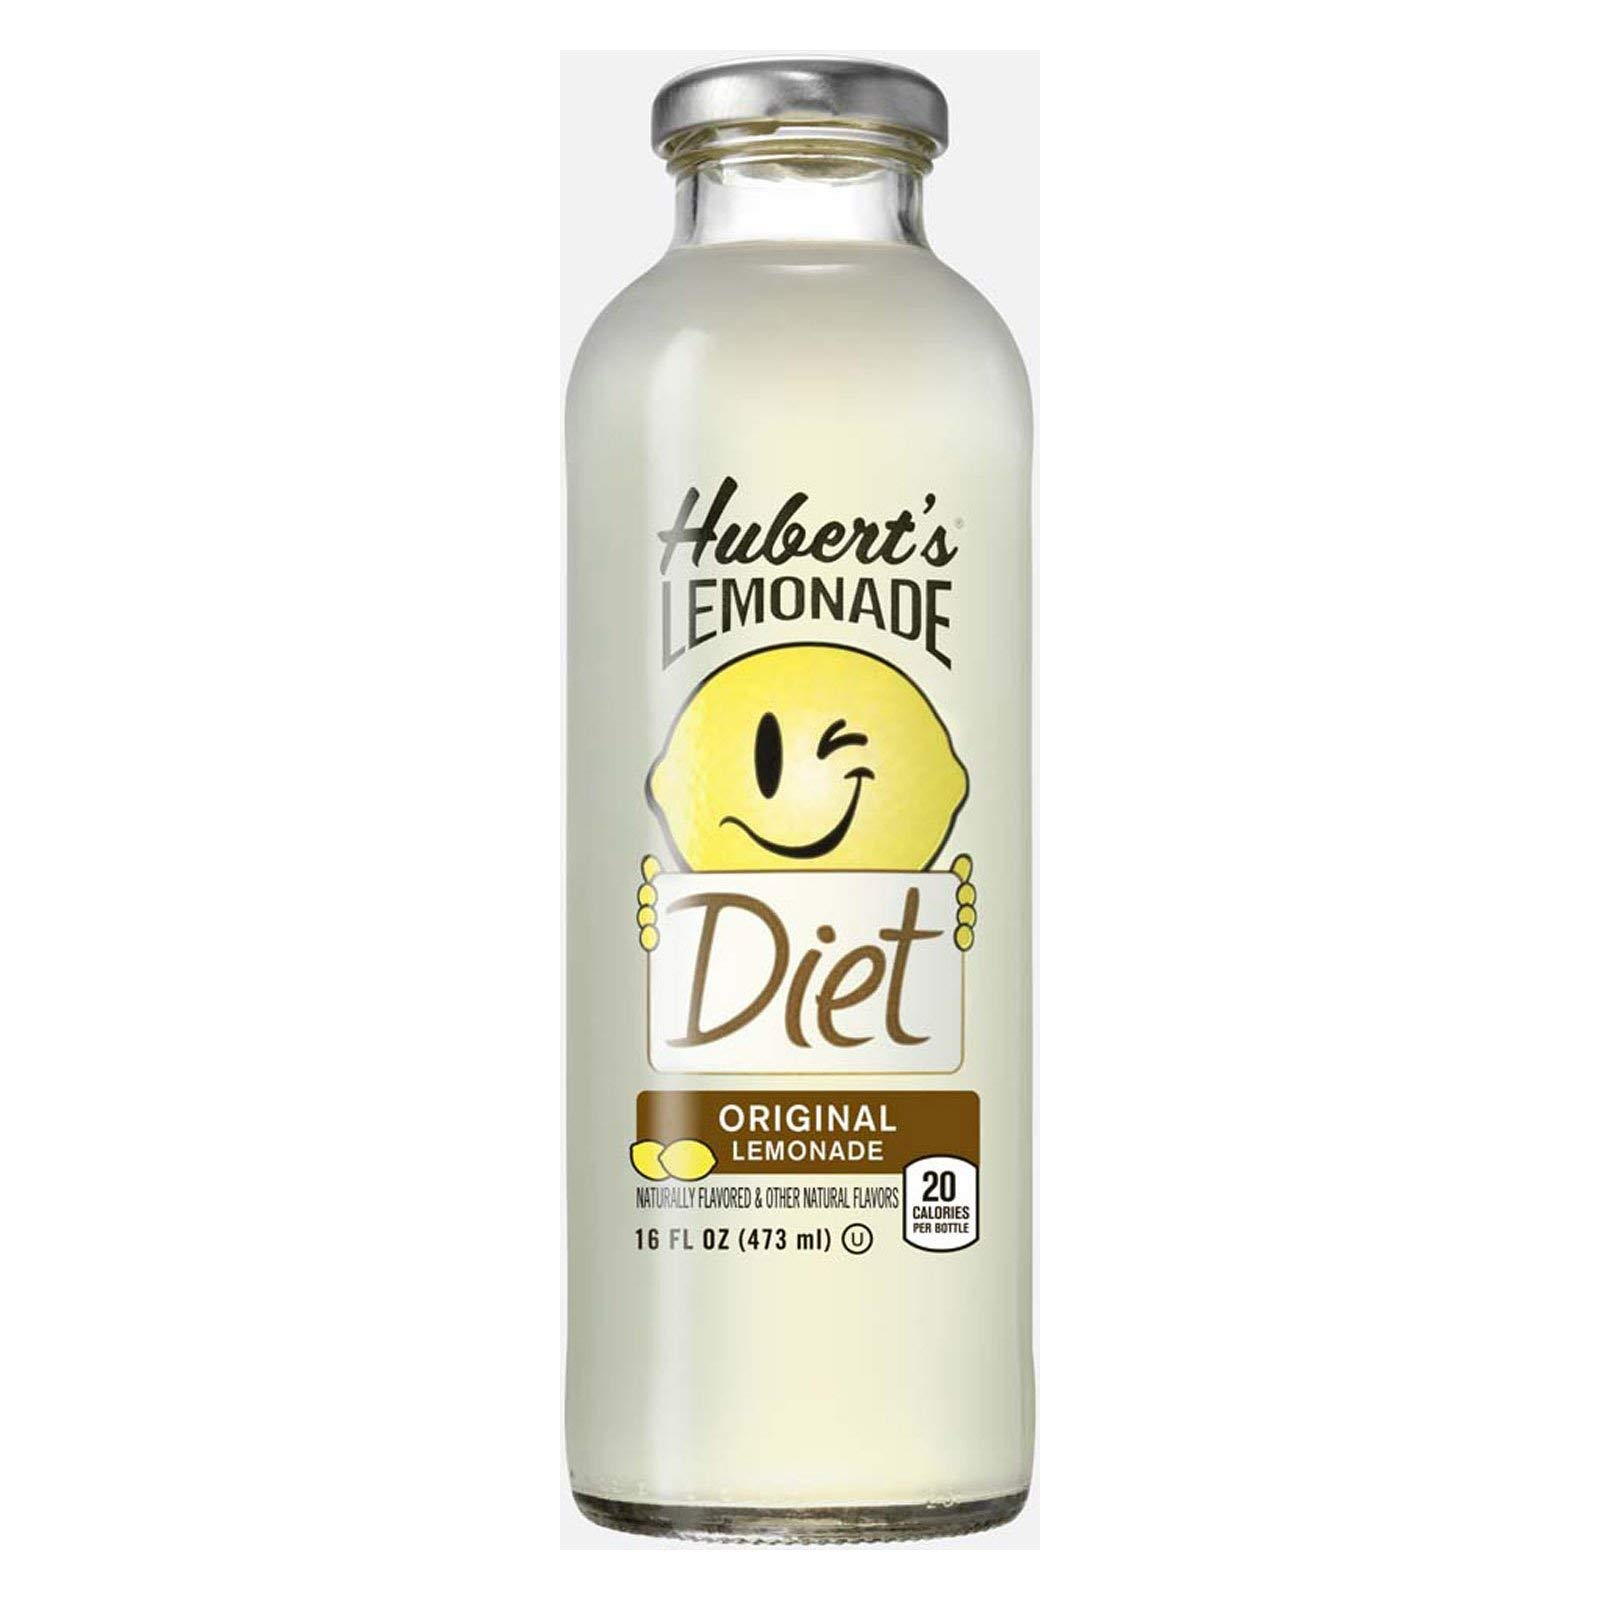 Huberts Lemonade Diet Original